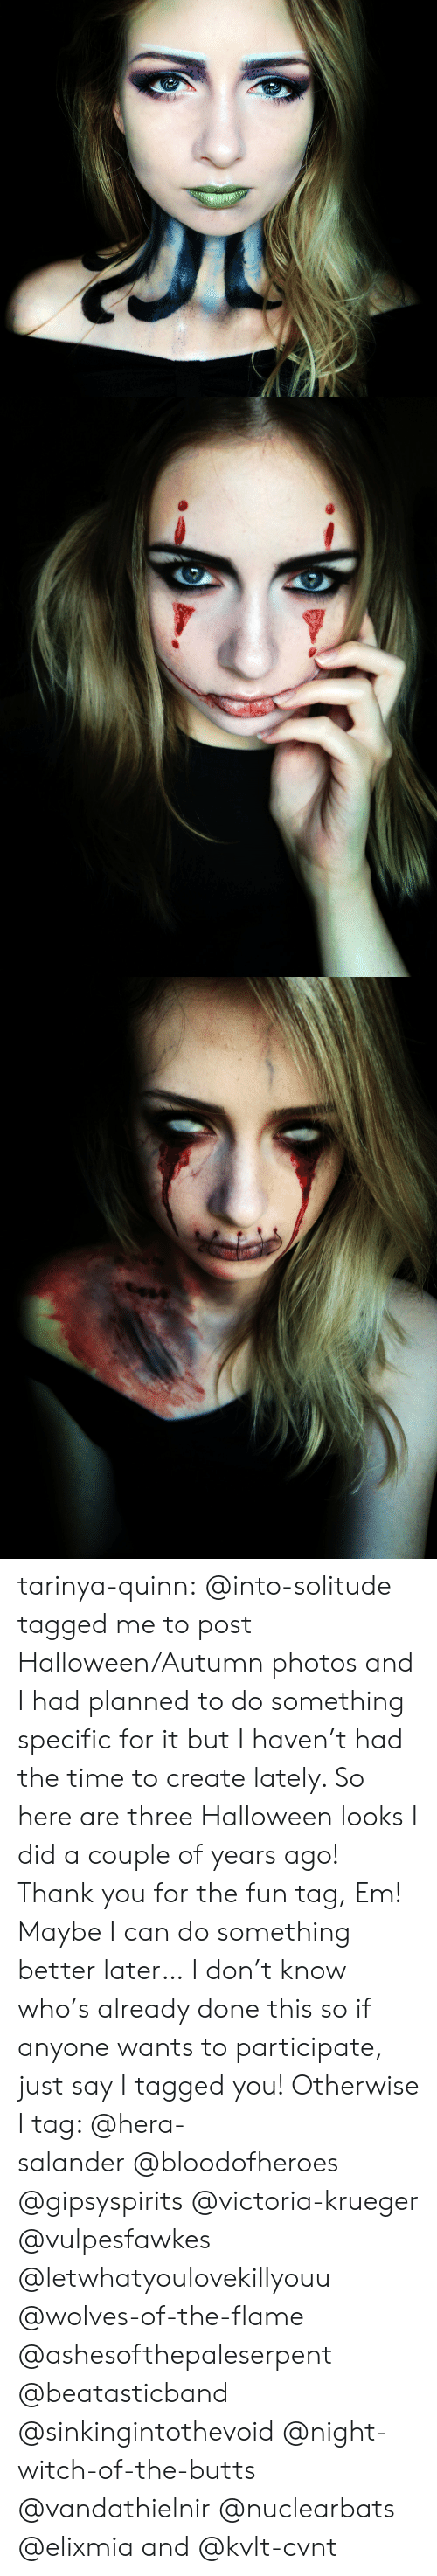 Halloween, Tumblr, and Thank You: tarinya-quinn:  @into-solitude tagged me to post Halloween/Autumn photos and I had planned to do something specific for it but I haven't had the time to create lately. So here are three Halloween looks I did a couple of years ago! Thank you for the fun tag, Em! Maybe I can do something better later…I don't know who's already done this so if anyone wants to participate, just say I tagged you! Otherwise I tag: @hera-salander@bloodofheroes @gipsyspirits @victoria-krueger @vulpesfawkes @letwhatyoulovekillyouu @wolves-of-the-flame @ashesofthepaleserpent @beatasticband @sinkingintothevoid @night-witch-of-the-butts @vandathielnir @nuclearbats @elixmia and @kvlt-cvnt